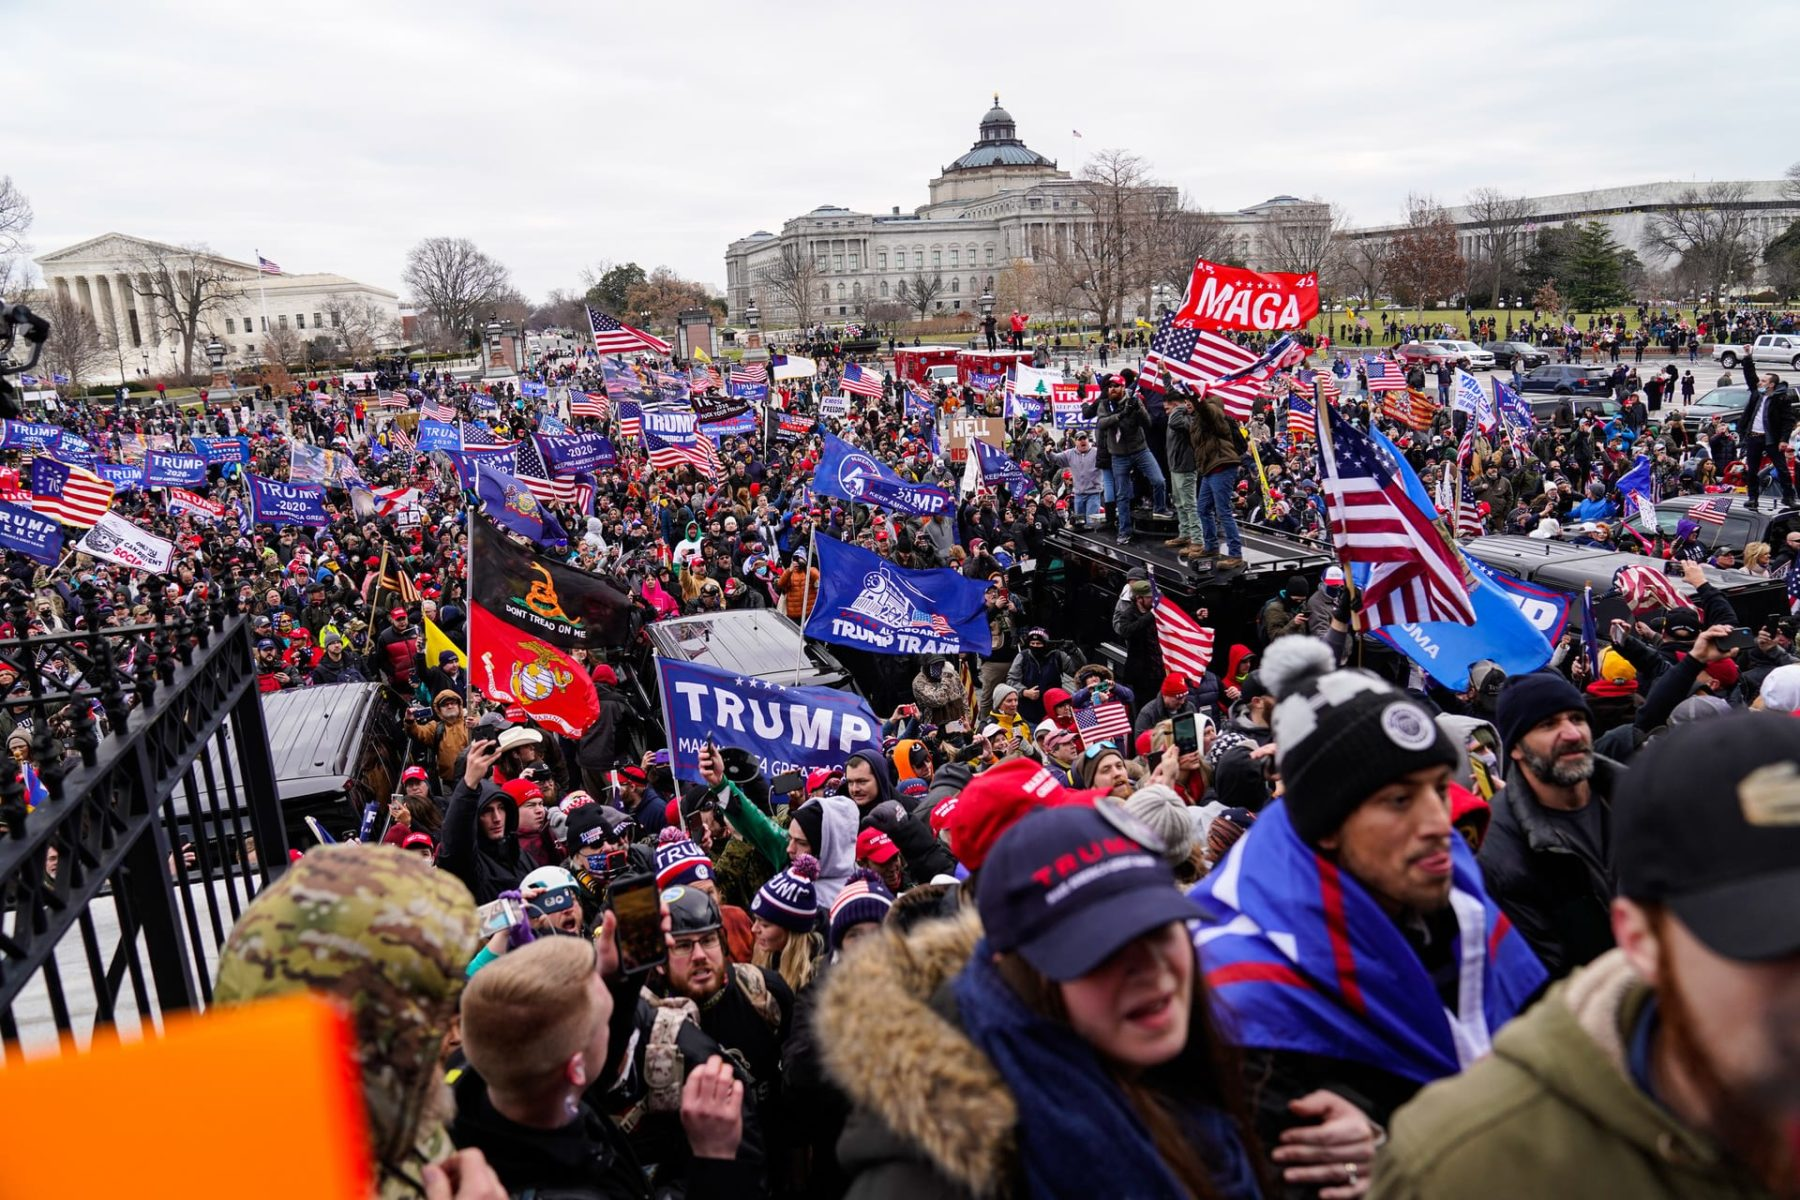 A crowd of pro-Trump supporters riot in front of the Capitol.